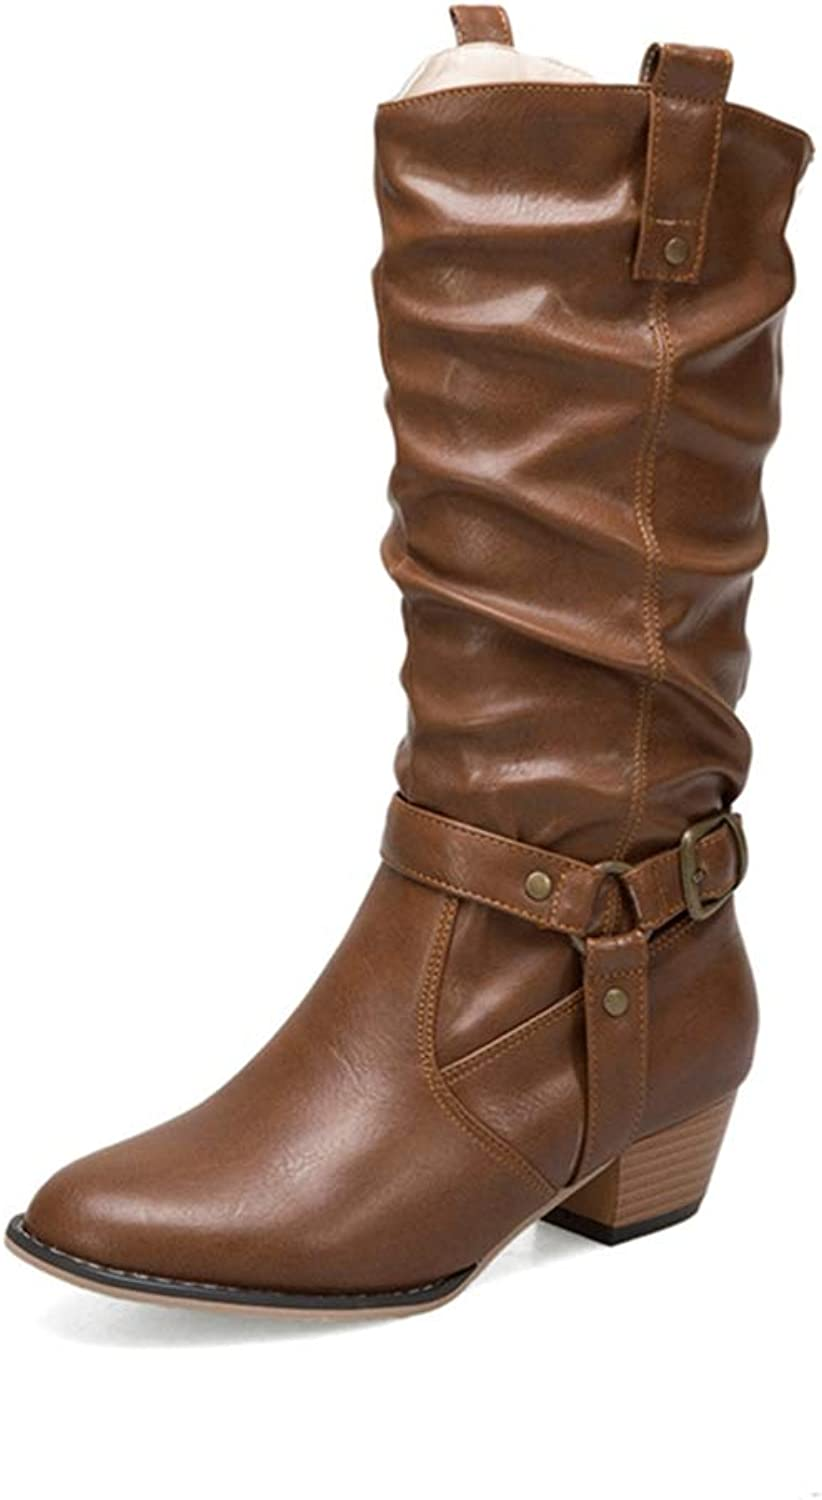 GIY Women's Slouch Riding Boots Buckle Mid Calf Round Toe Wide Width Velvet Low Heel Western Cowboy Boots